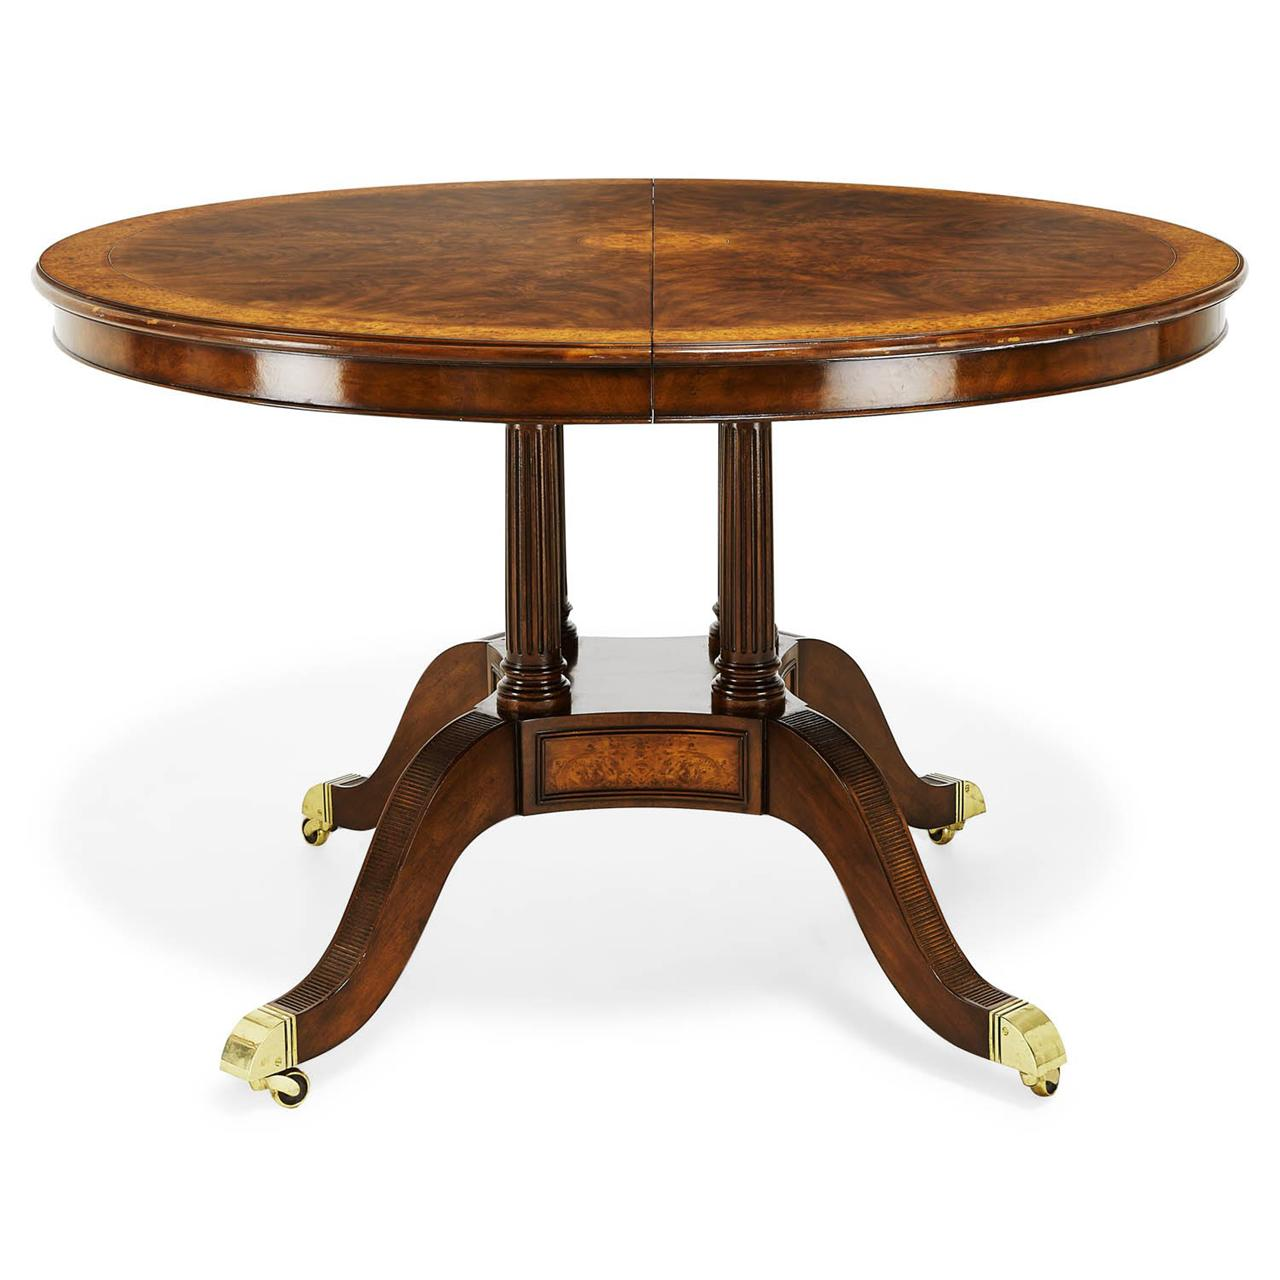 48 inch round to oval walnut and yew banded dining table for Small dining table for 6